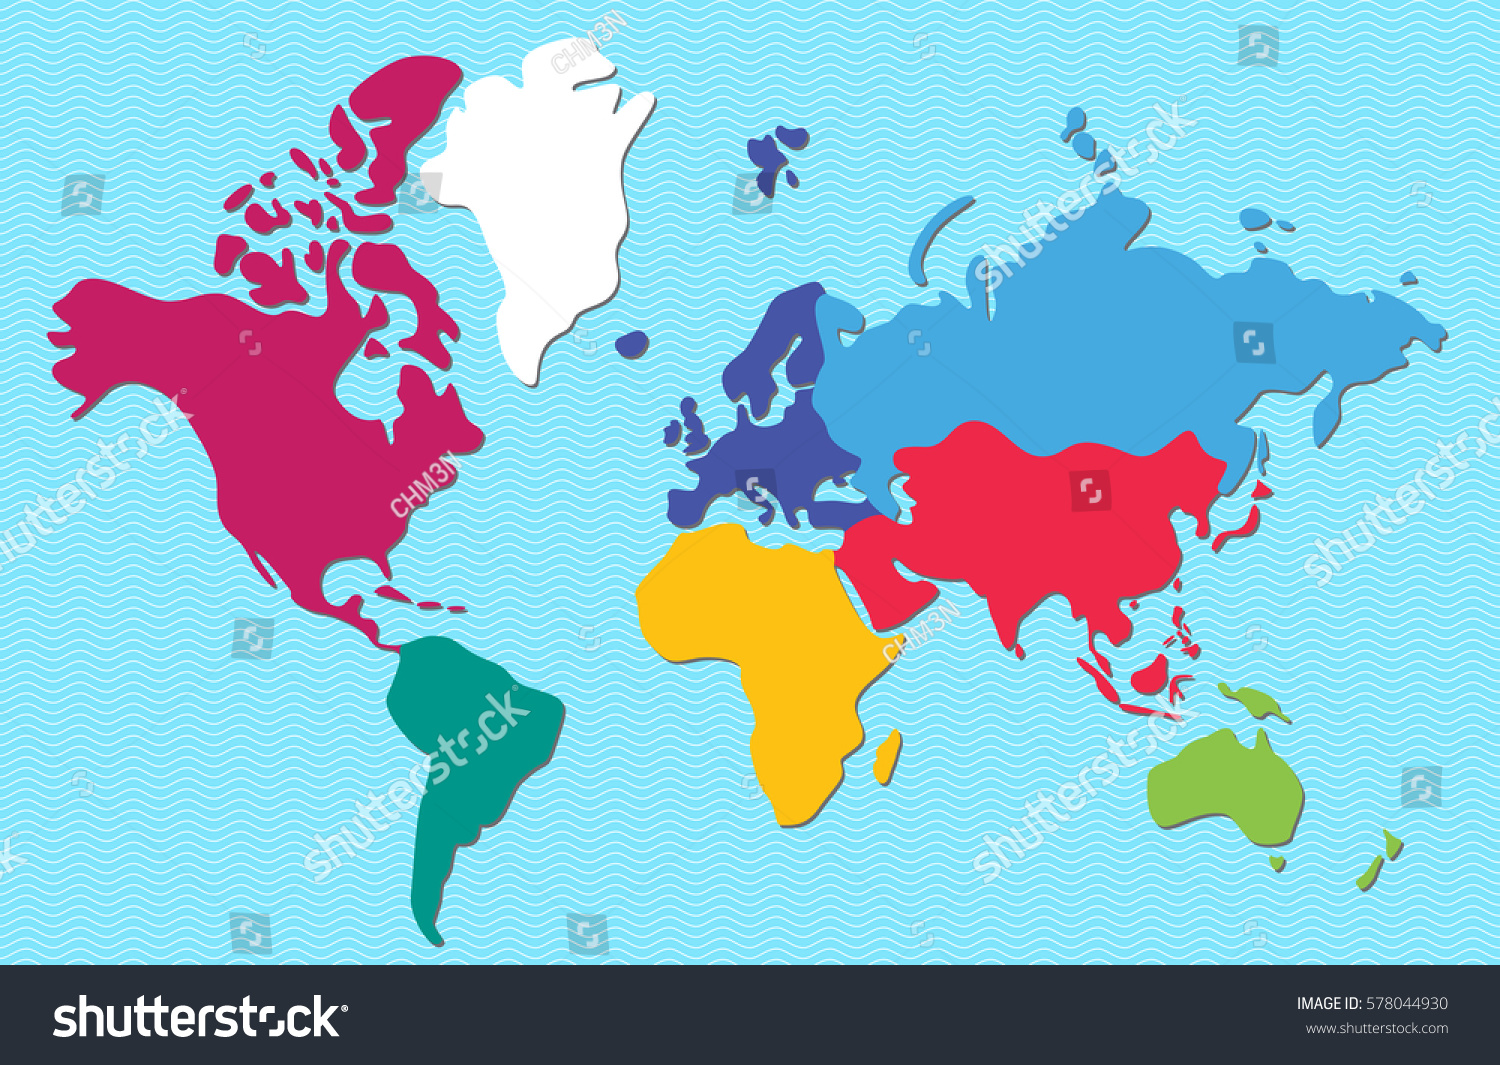 Abstract colorful world map continents isolated vectores en stock abstract colorful world map continents isolated on light blue background vector illustration gumiabroncs Gallery